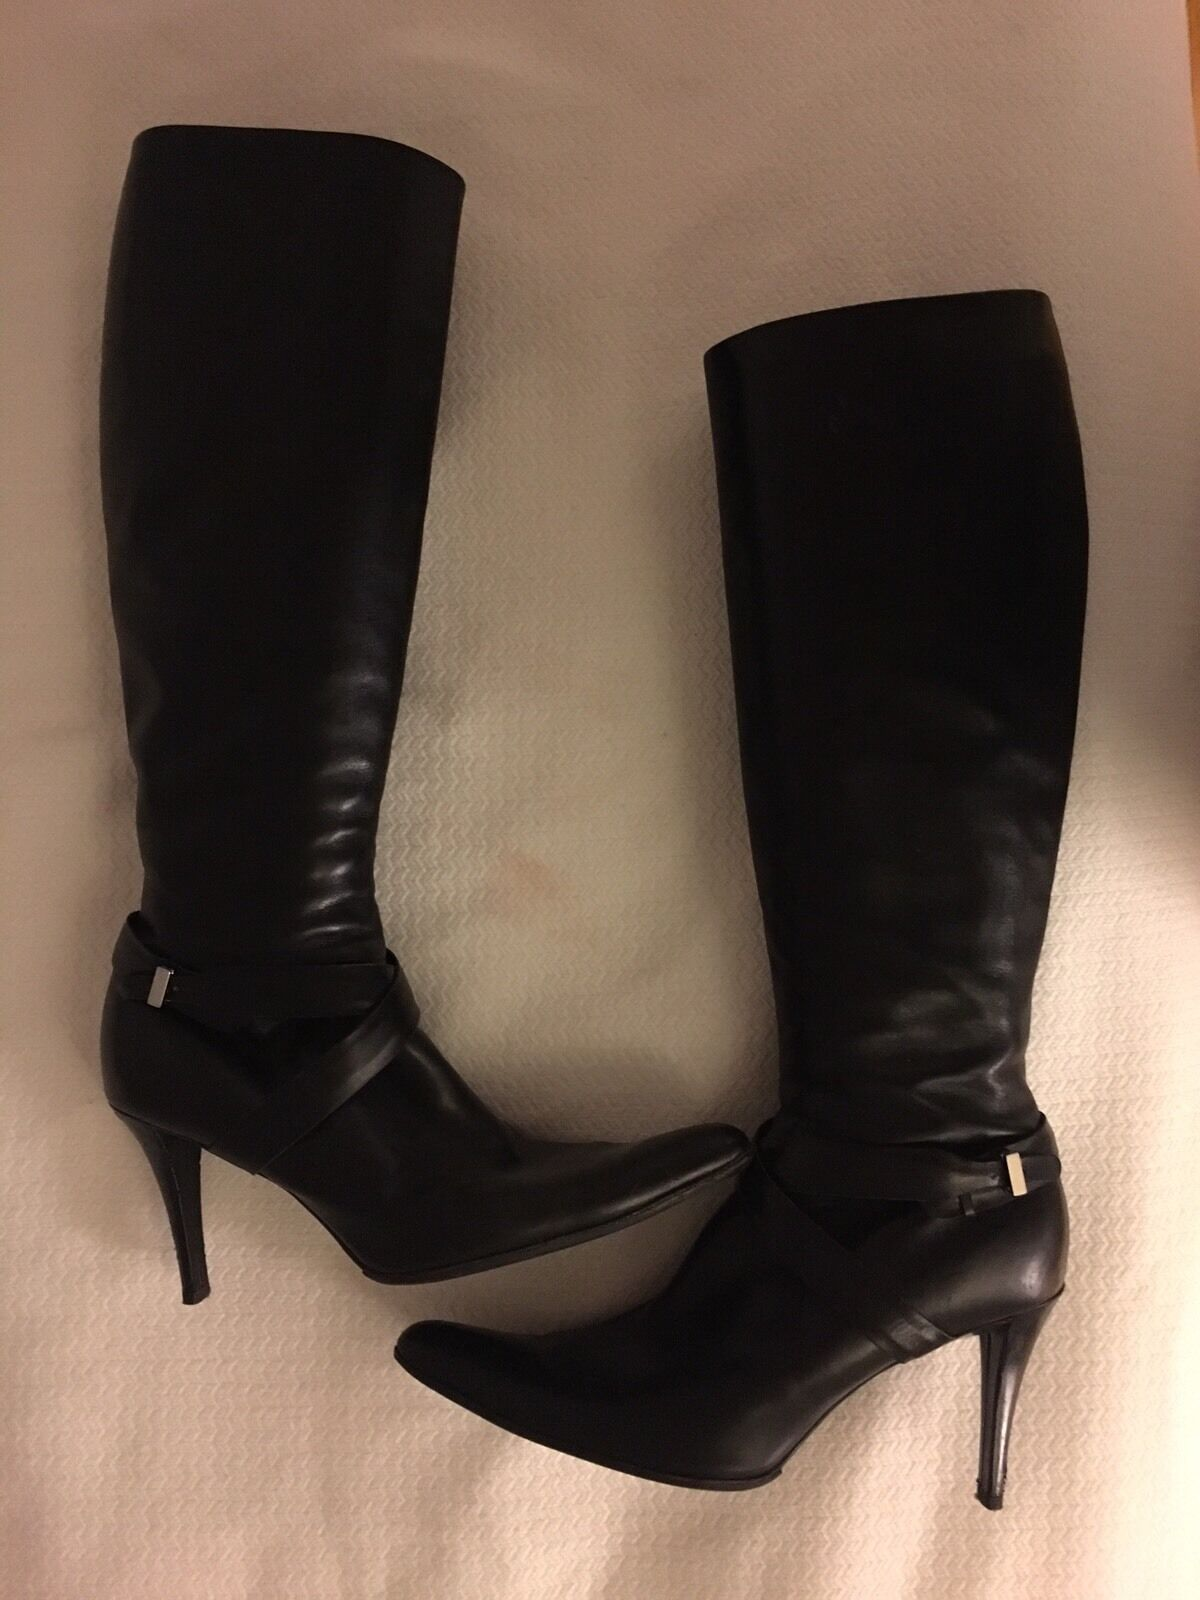 Ralph Lauren Collection Women's Black Leather Boots Knee High 3.5